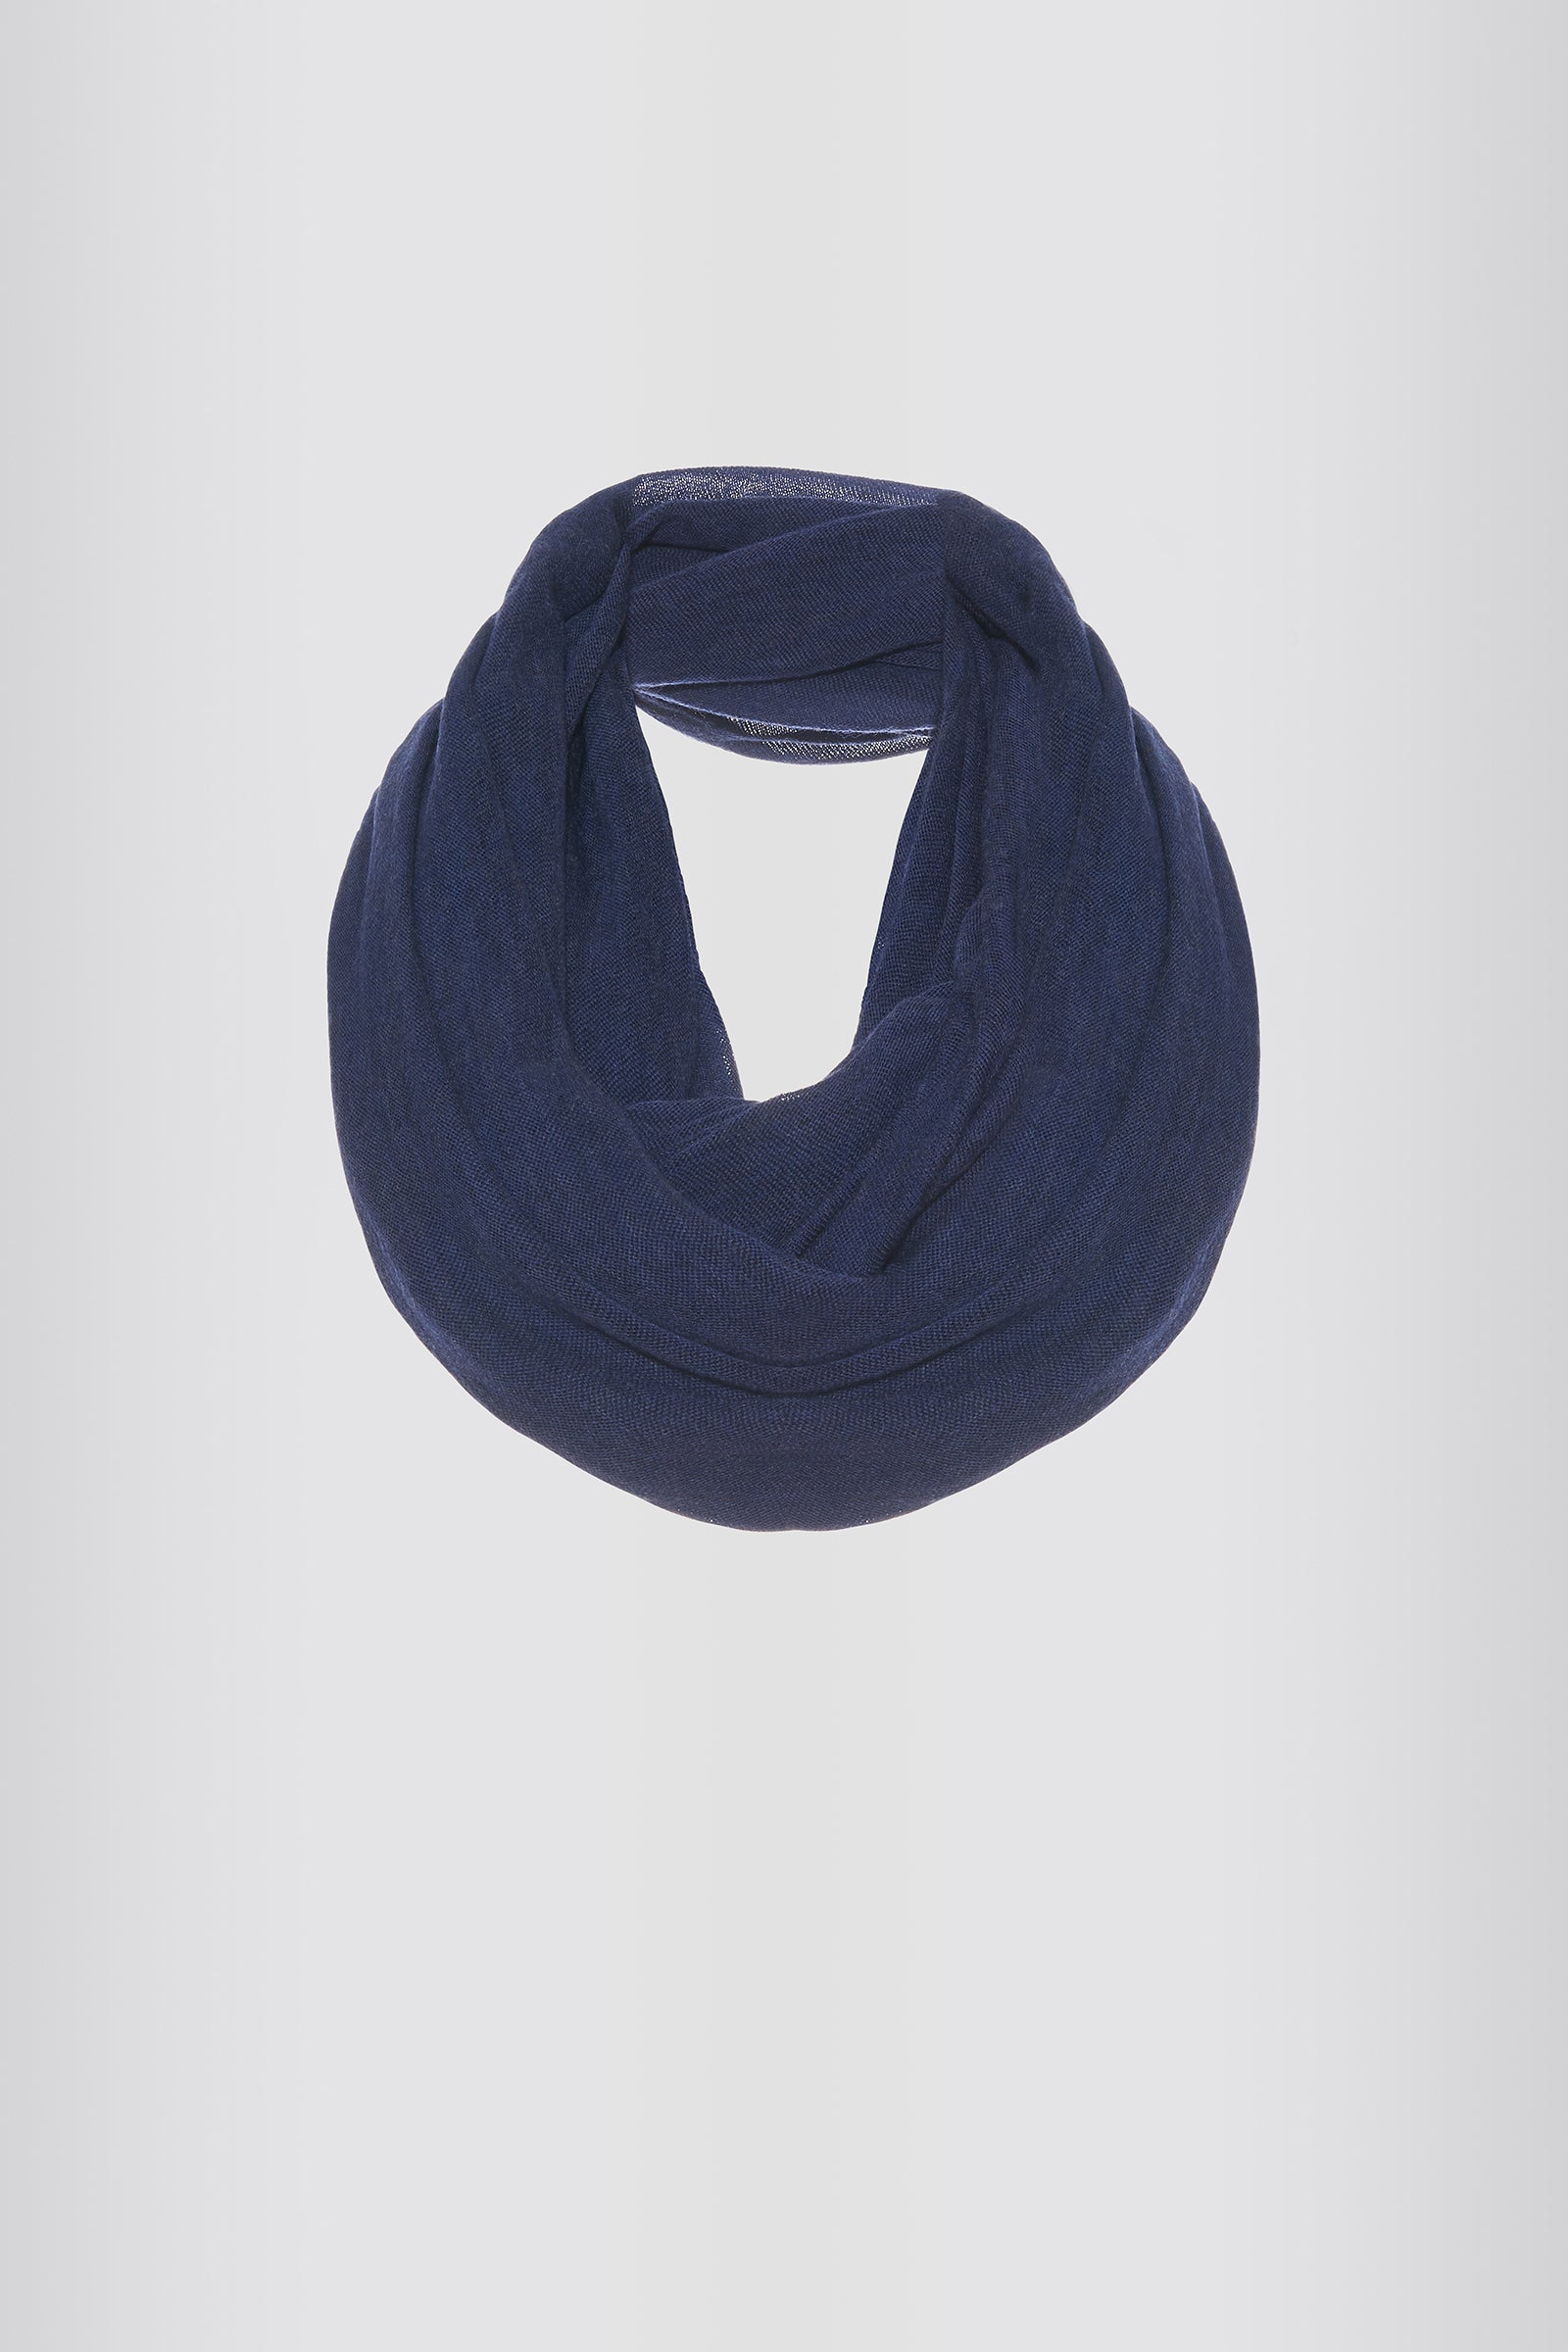 Kal Rieman Infinity Circle Scarf in Navy